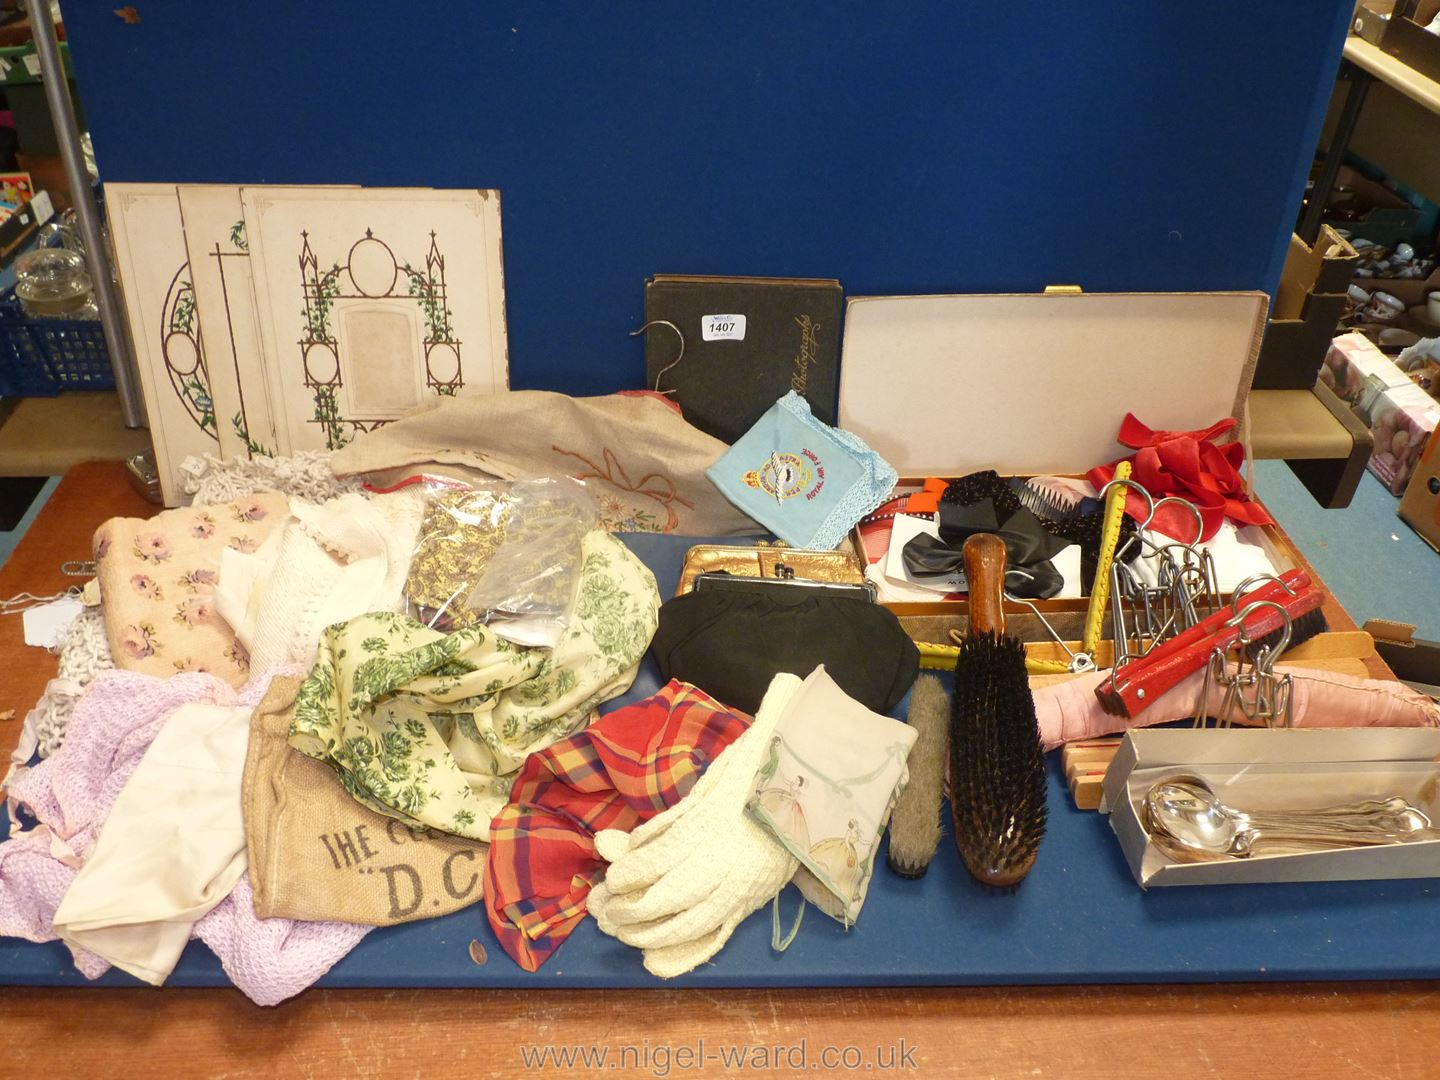 A box of miscellanea to include; hair bows, clothes brushes, hangers, linen & crochet items,